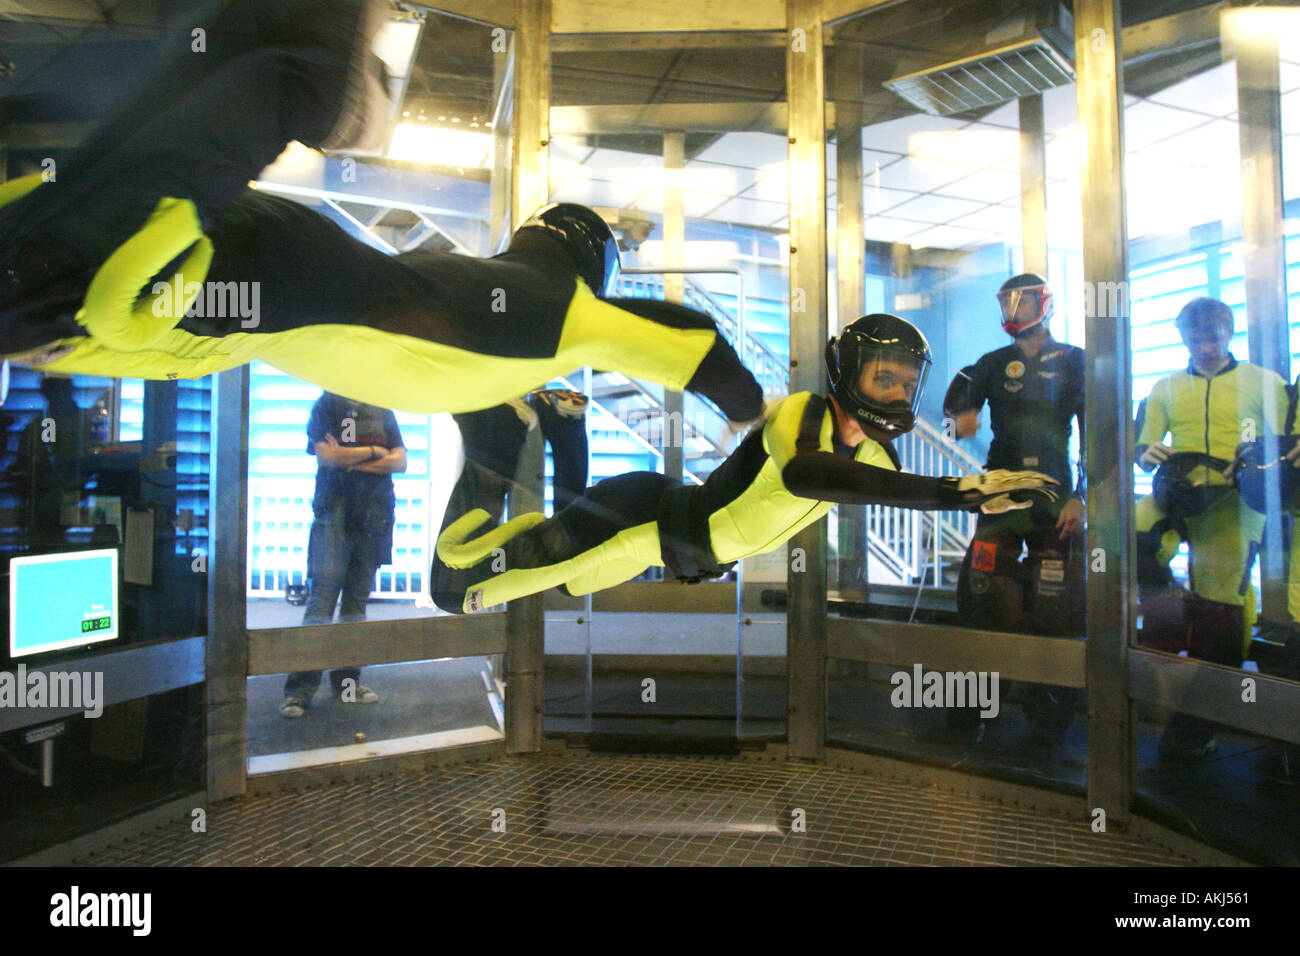 skyventure sky diving wind tunnel in orlando florida Stock Photo